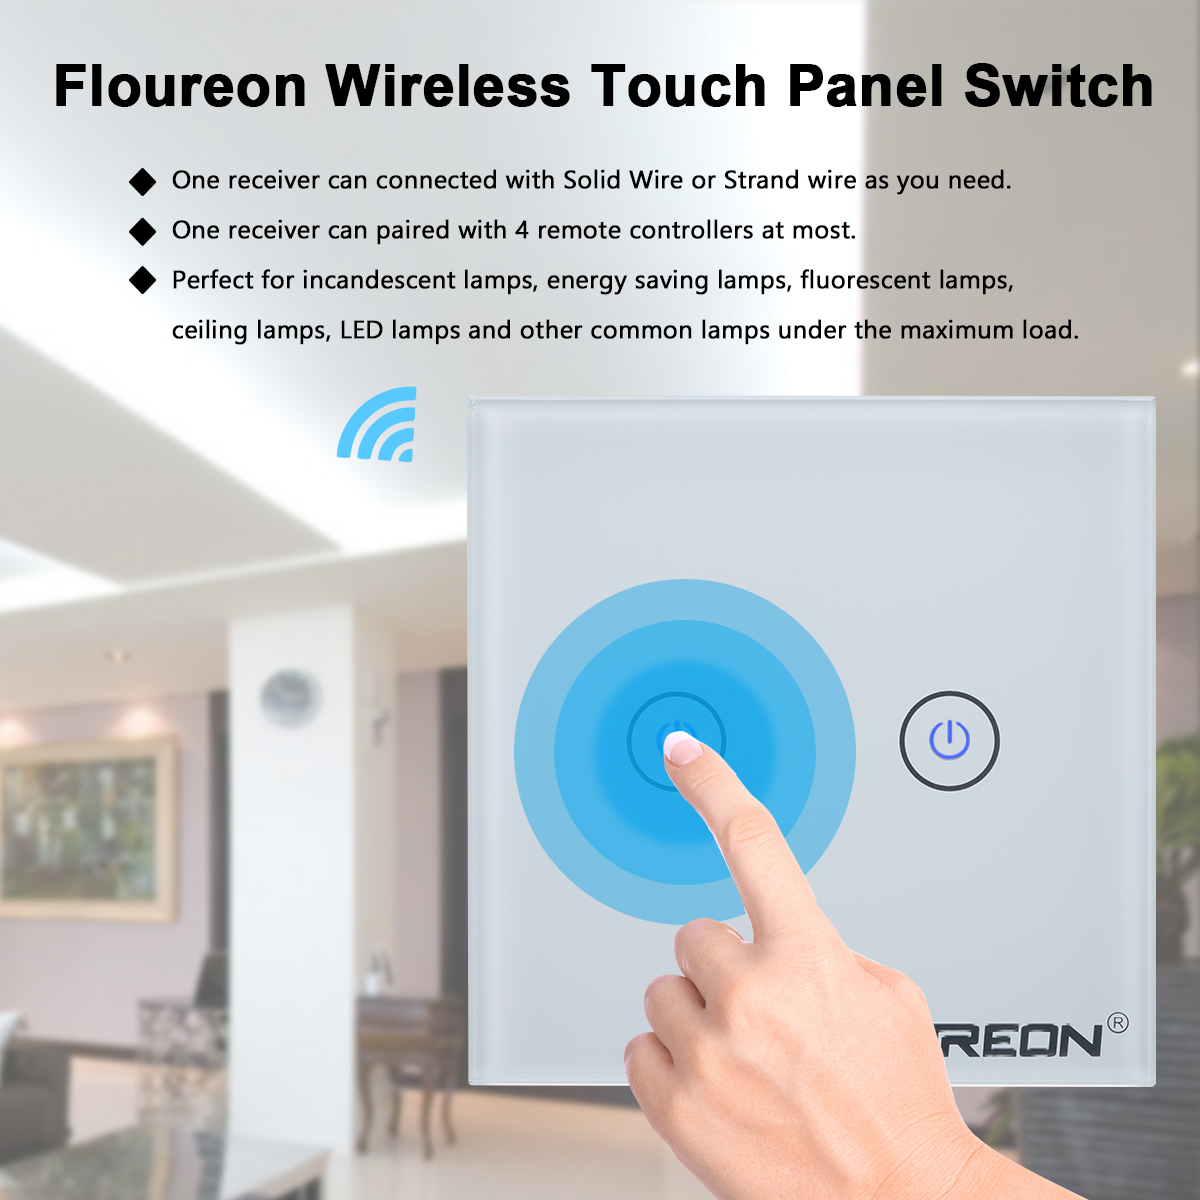 Floureon 2 Gang 1 Way Wireless Rf Light Wall Switch Remote Wiring A Our Is Only Suitable For Indoor Use Not Outdoors